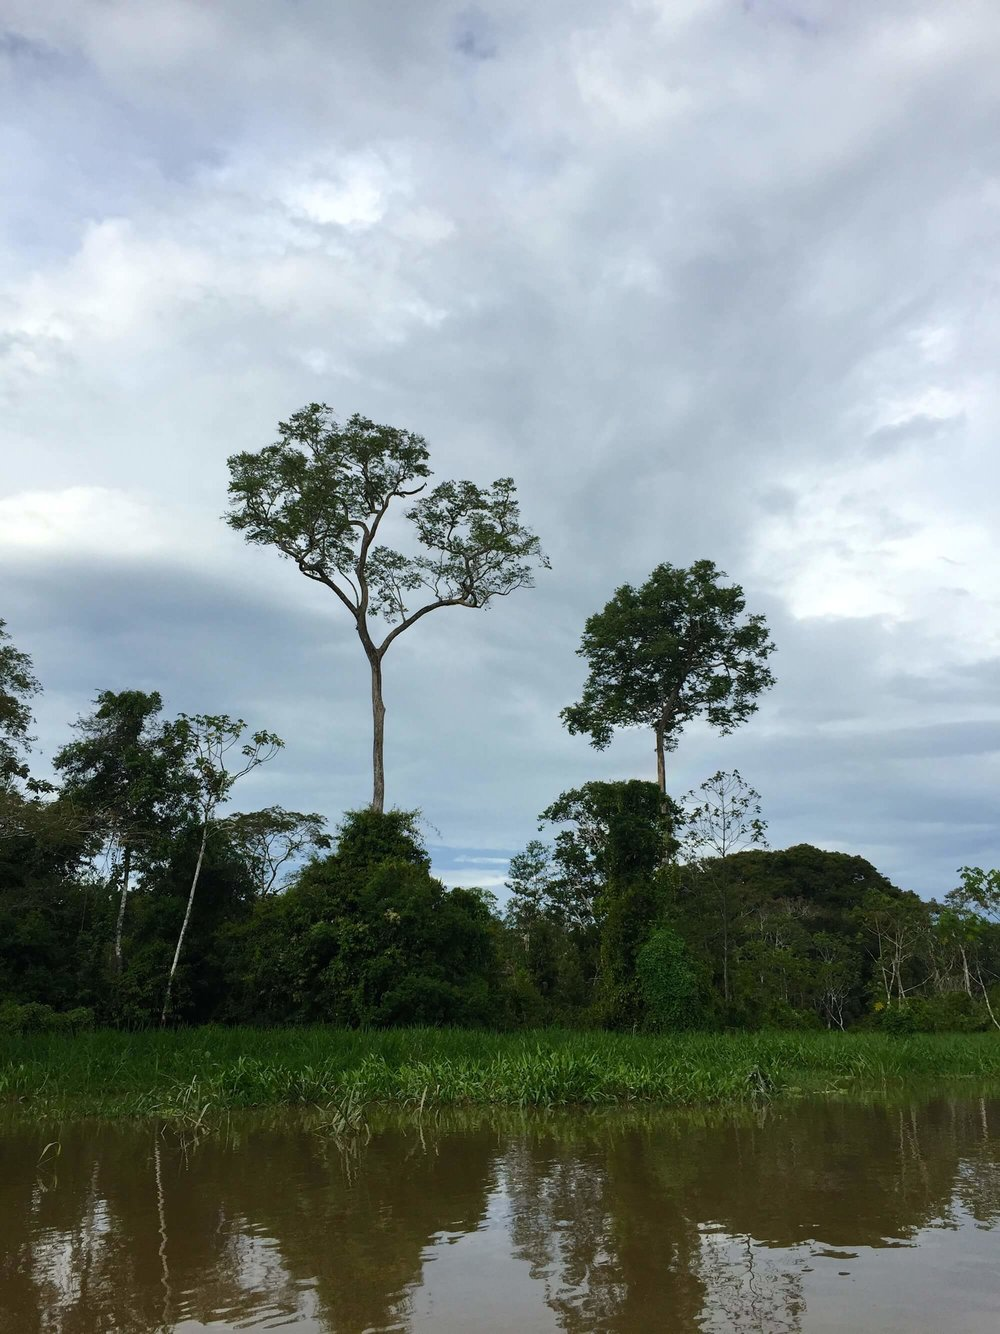 Preserving the Amazon protects both natural habitats and indigenous ways of life